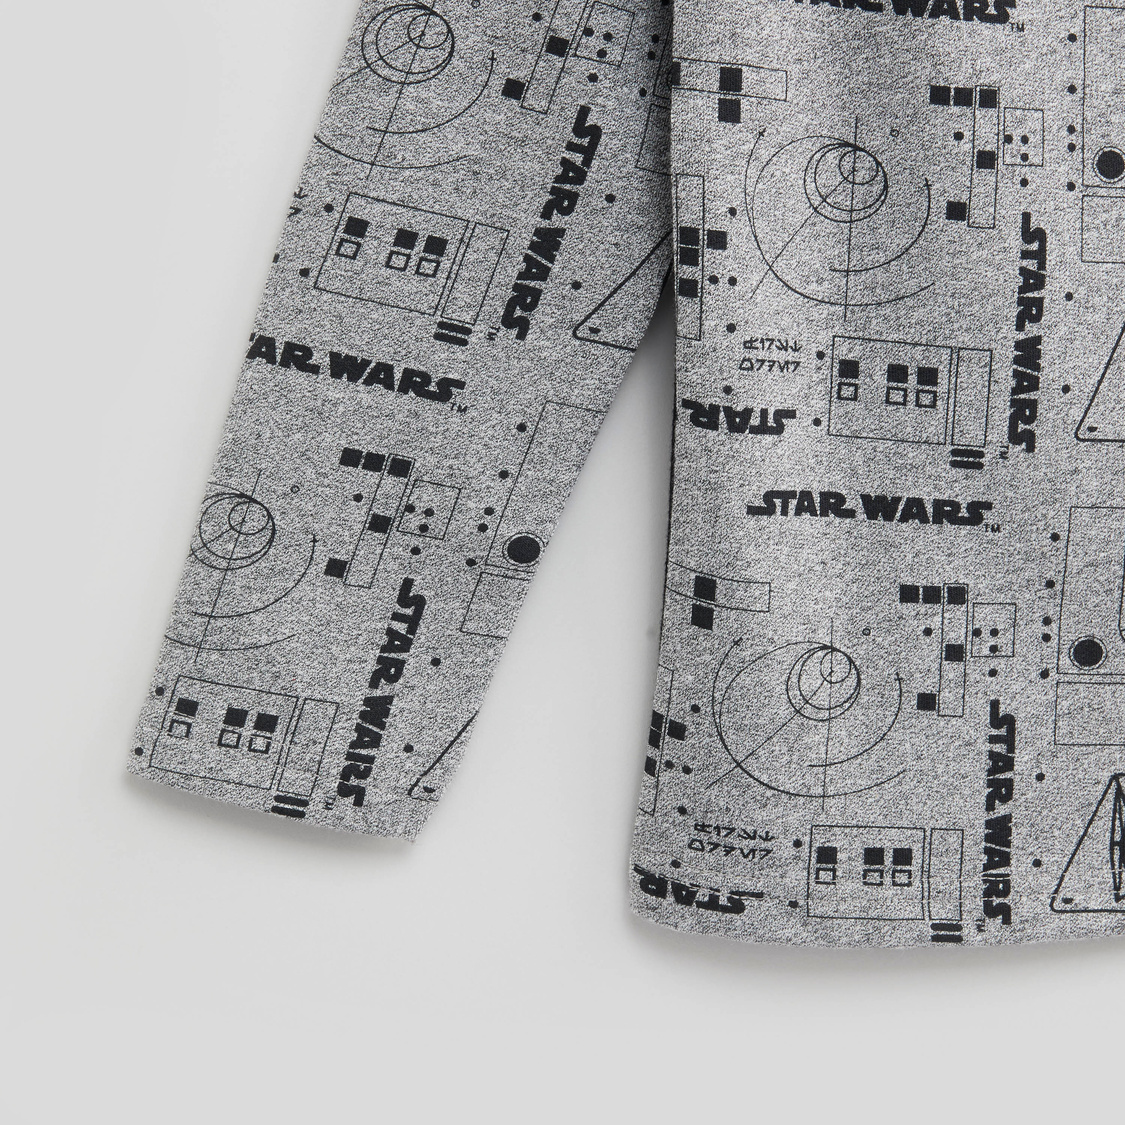 Star Wars Printed T-shirt with Round Neck and Long Sleeves